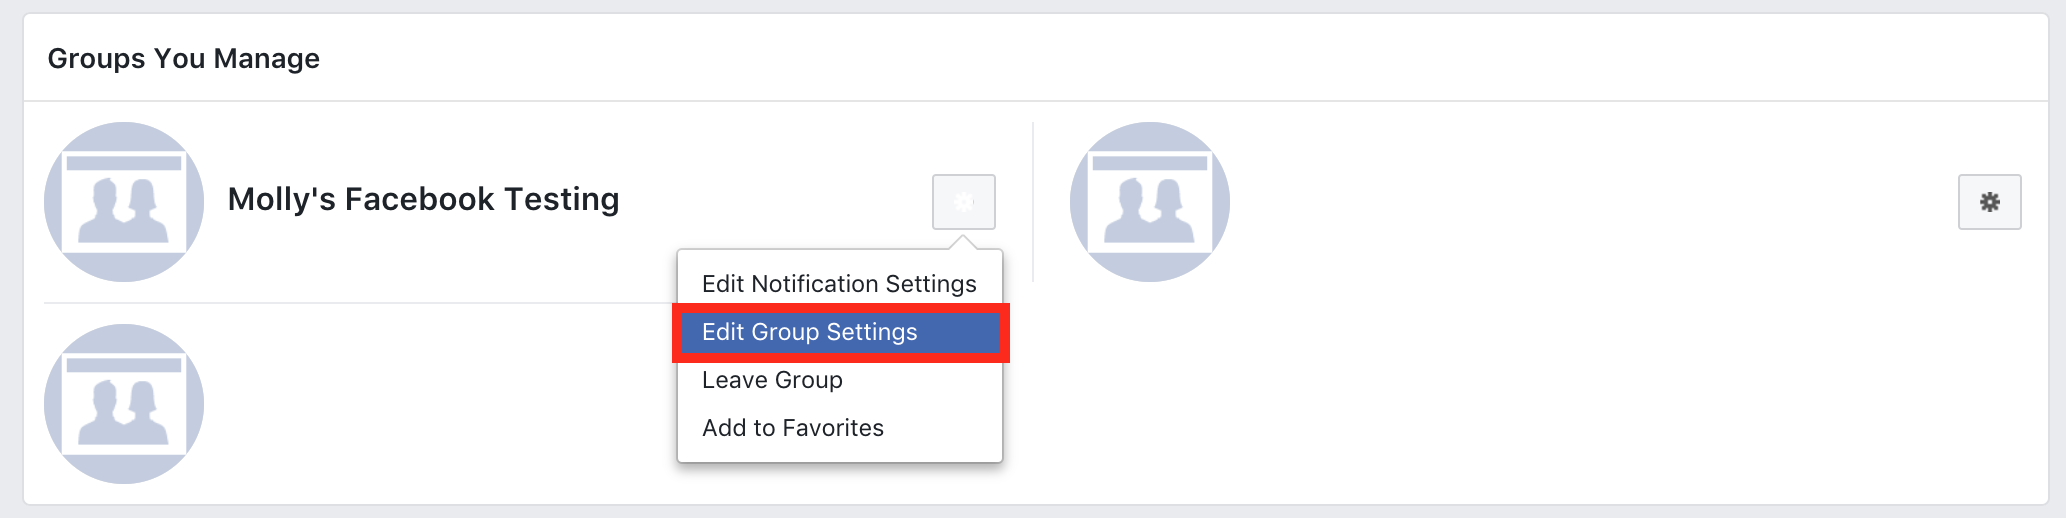 facebookgroup-settings.png